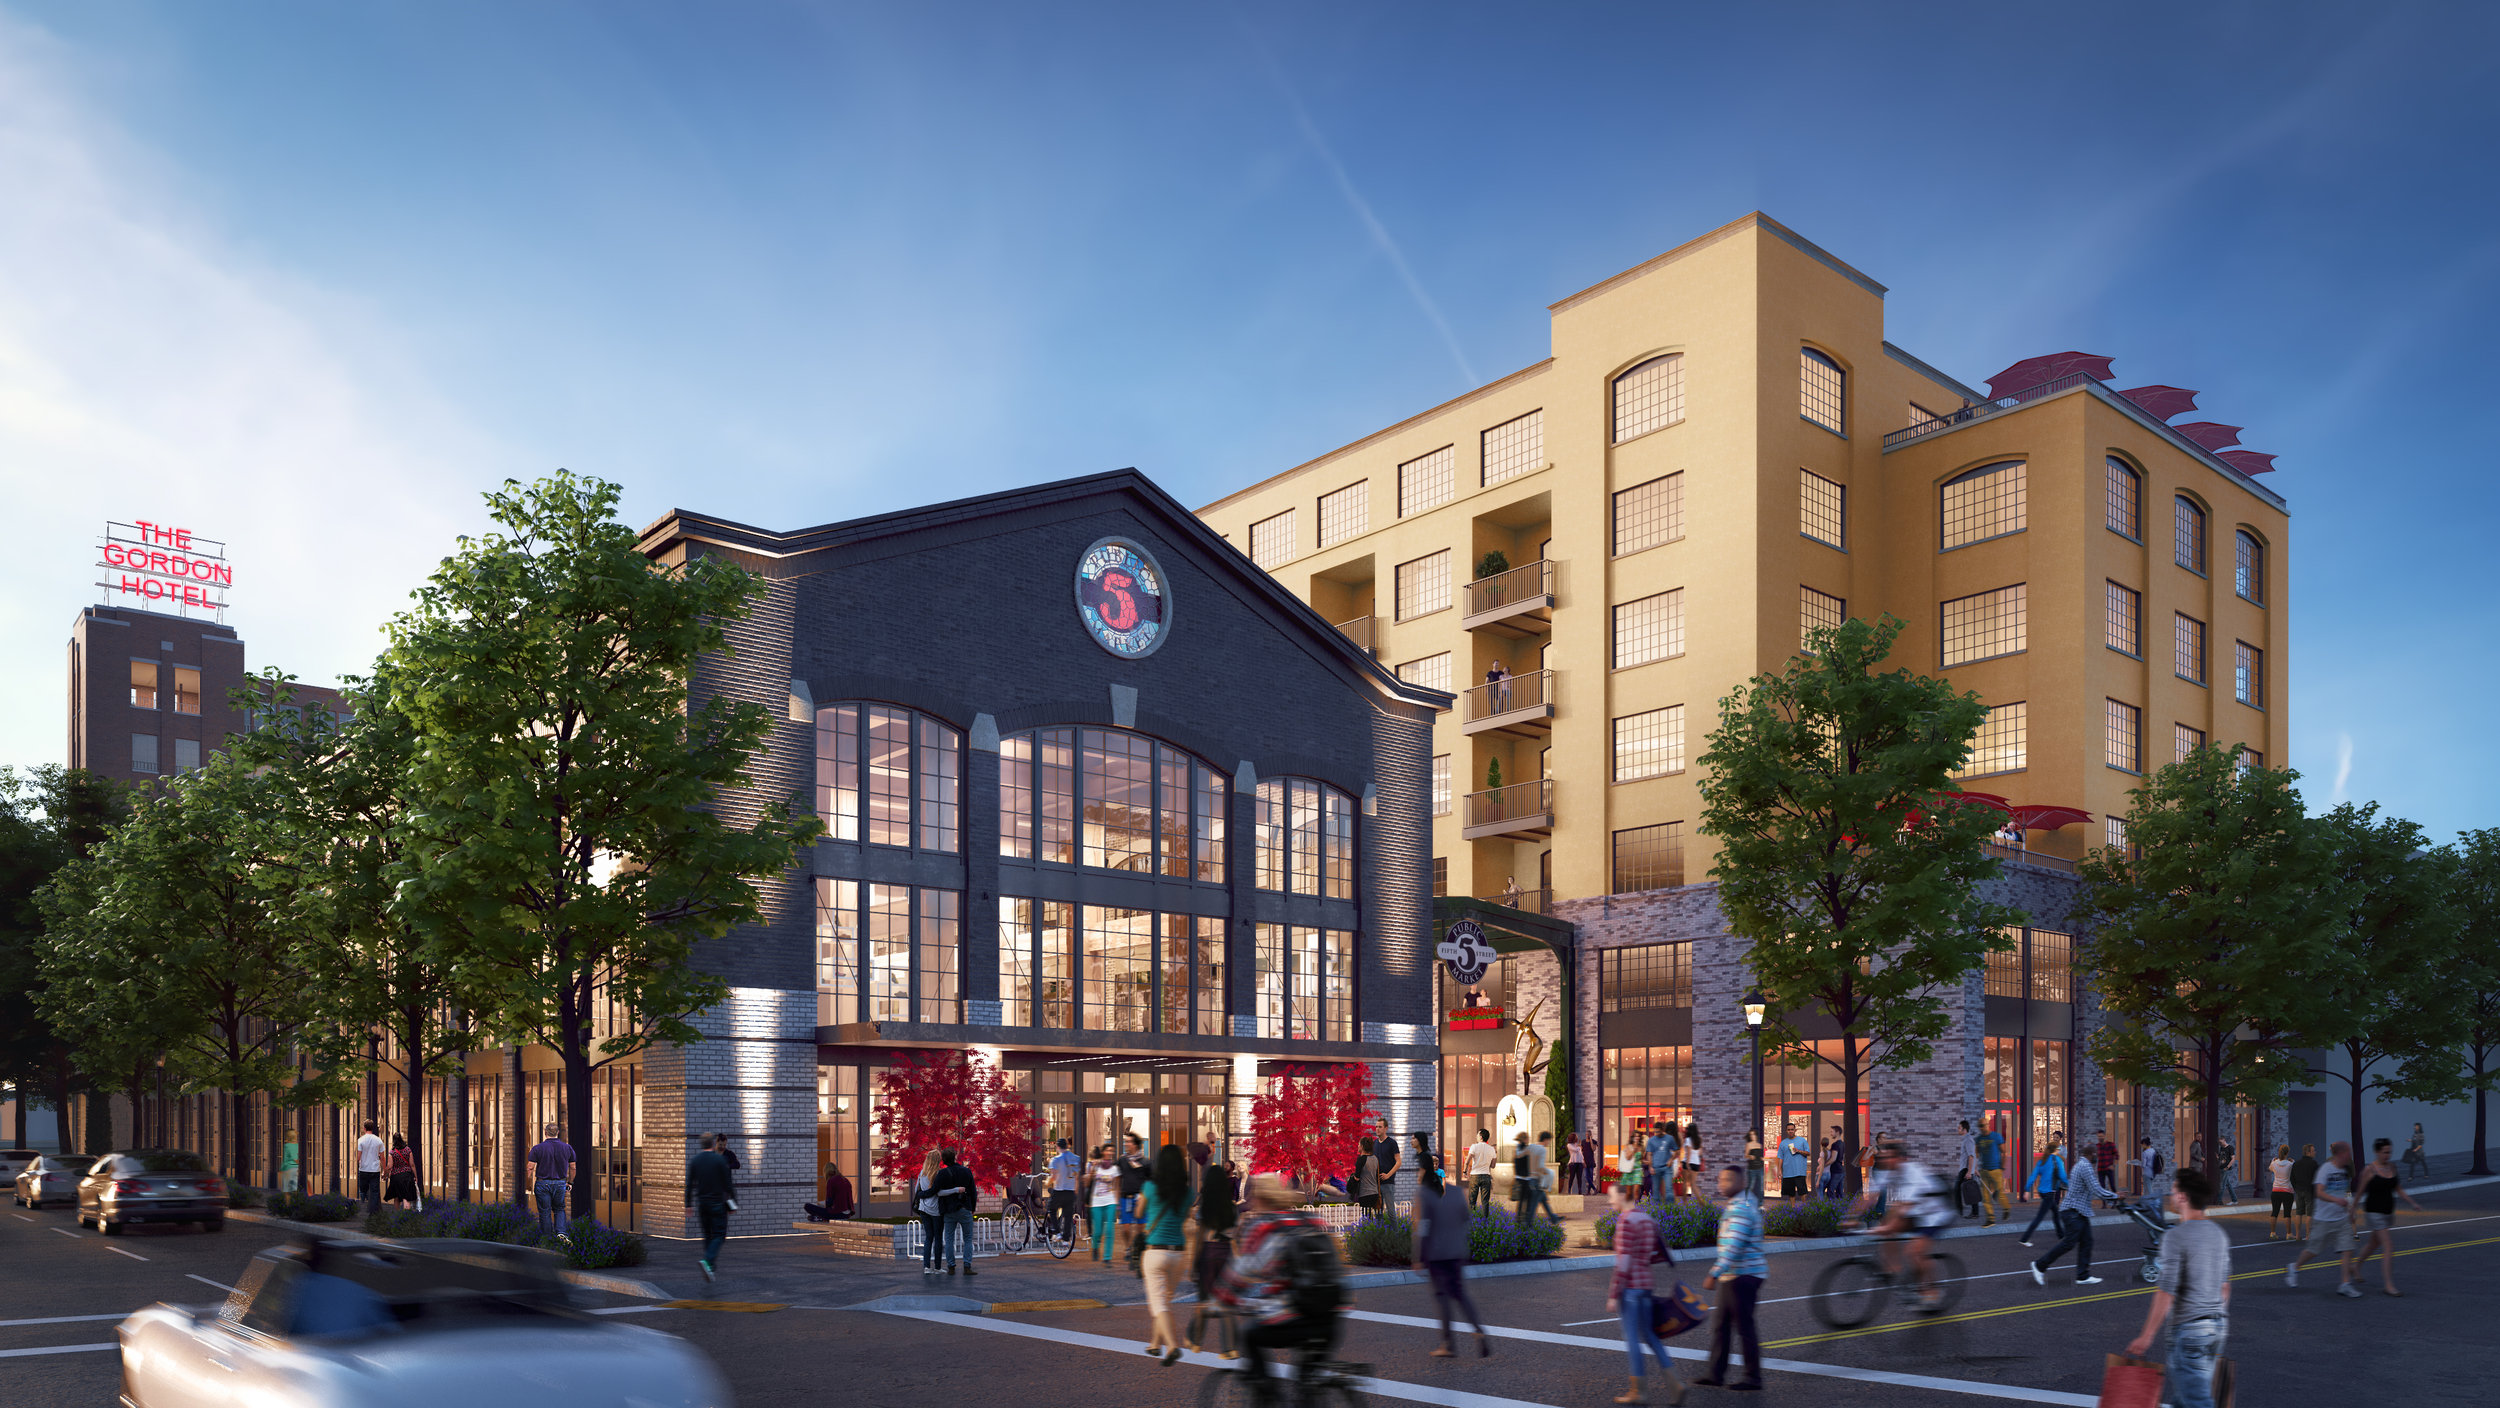 5thstreetpublicmarket_Expansion